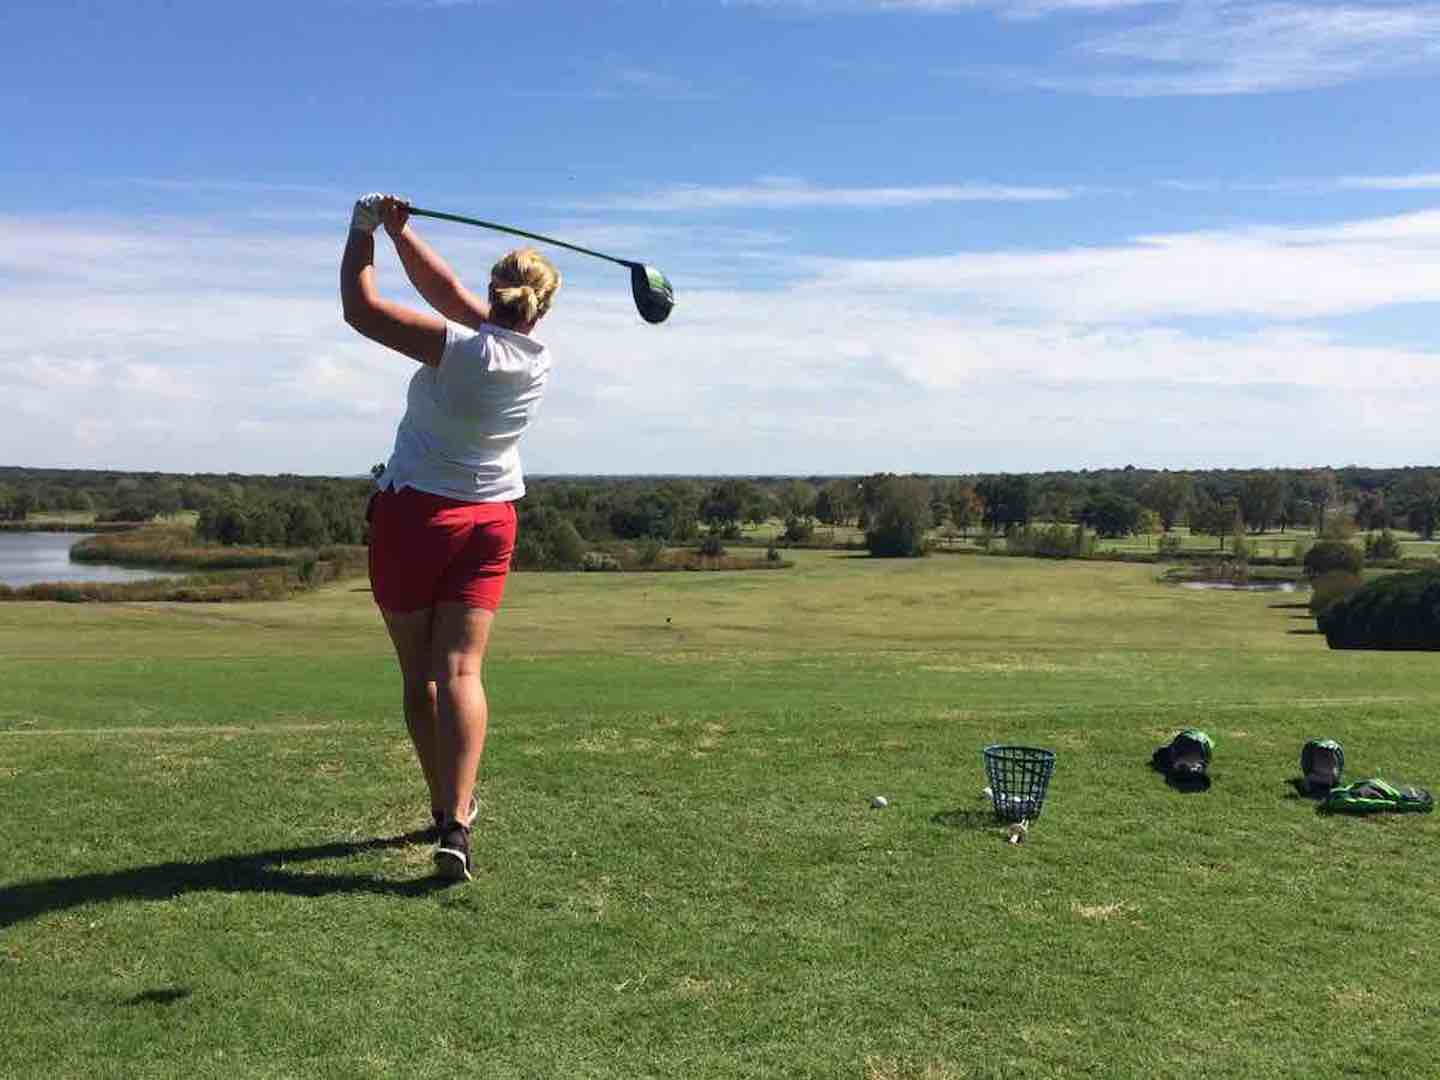 UK woman's long drive champ finishes 3rd in World Finals